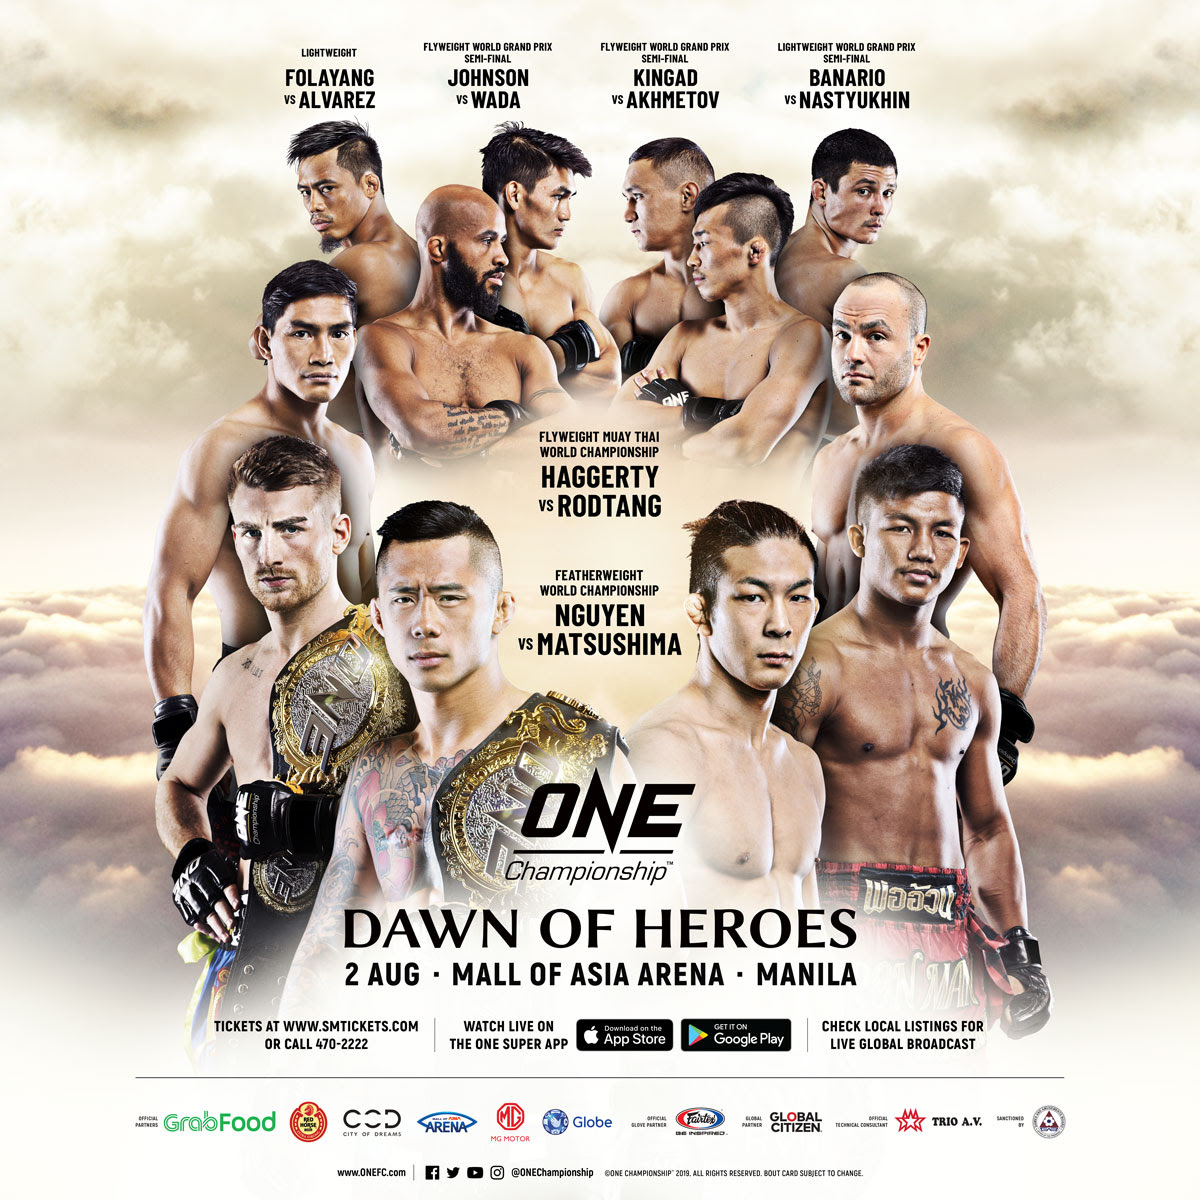 MARTIN NGUYEN TO DEFEND ONE FEATHERWEIGHT WORLD TITLE AGAINST KOYOMI MATSUSHIMA IN MANILA ON 2 AUGUST -